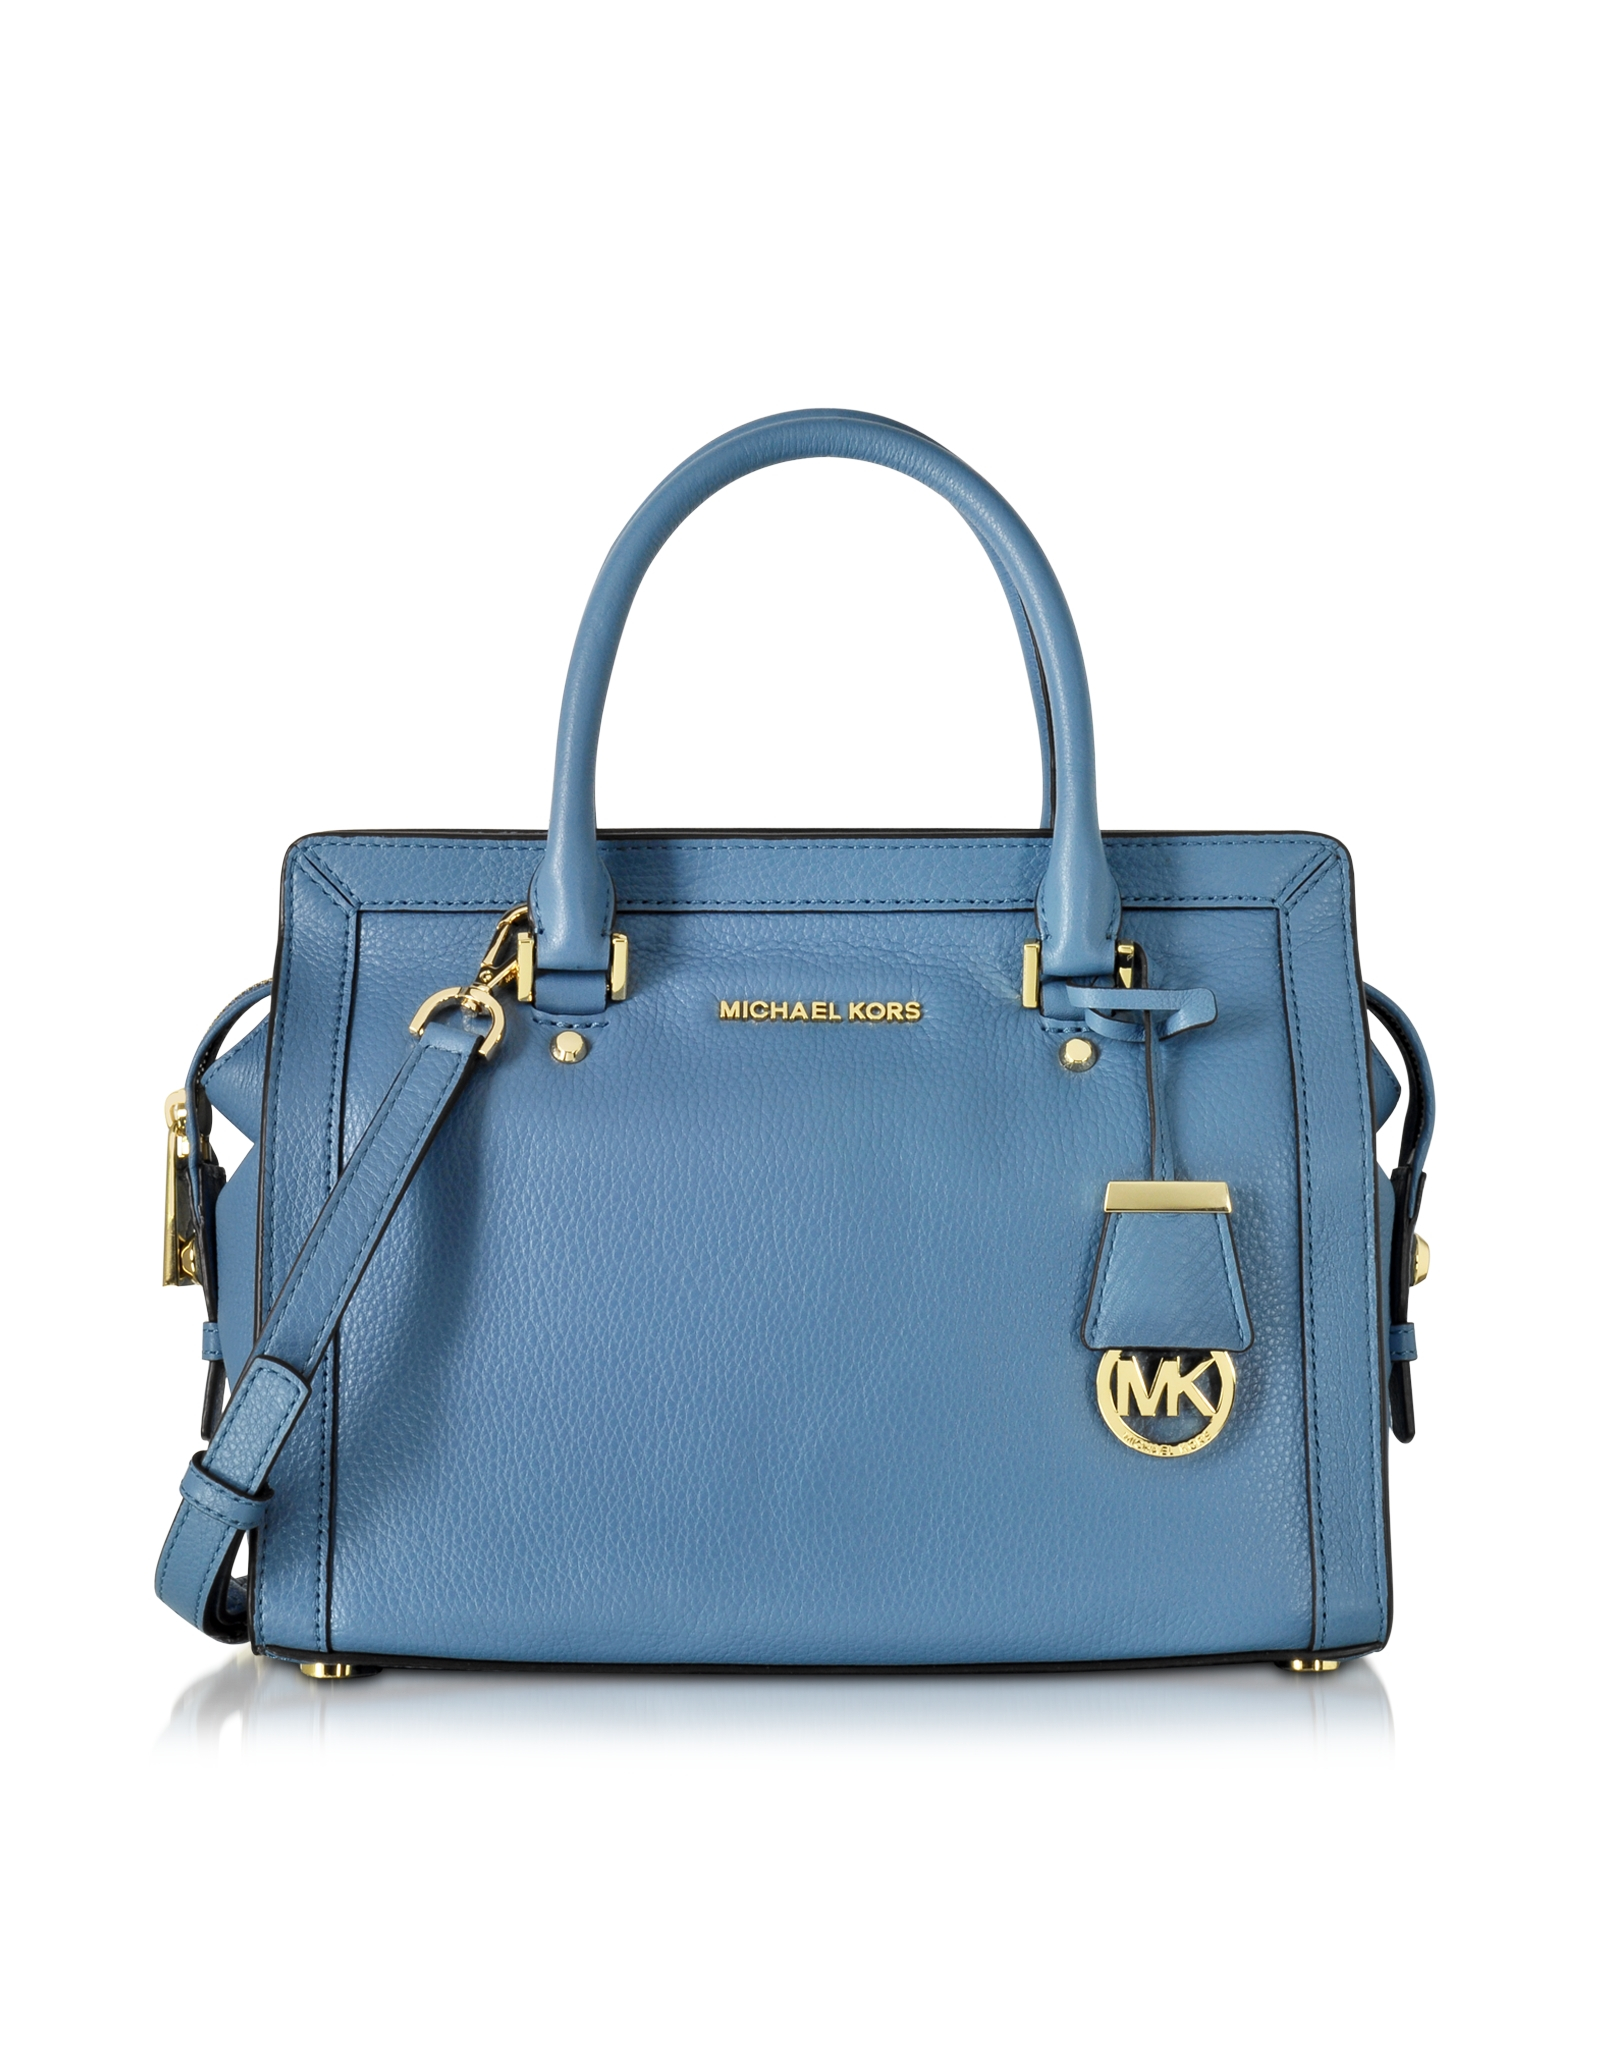 Michael kors Collins Medium Leather Satchel Bag in Blue | Lyst